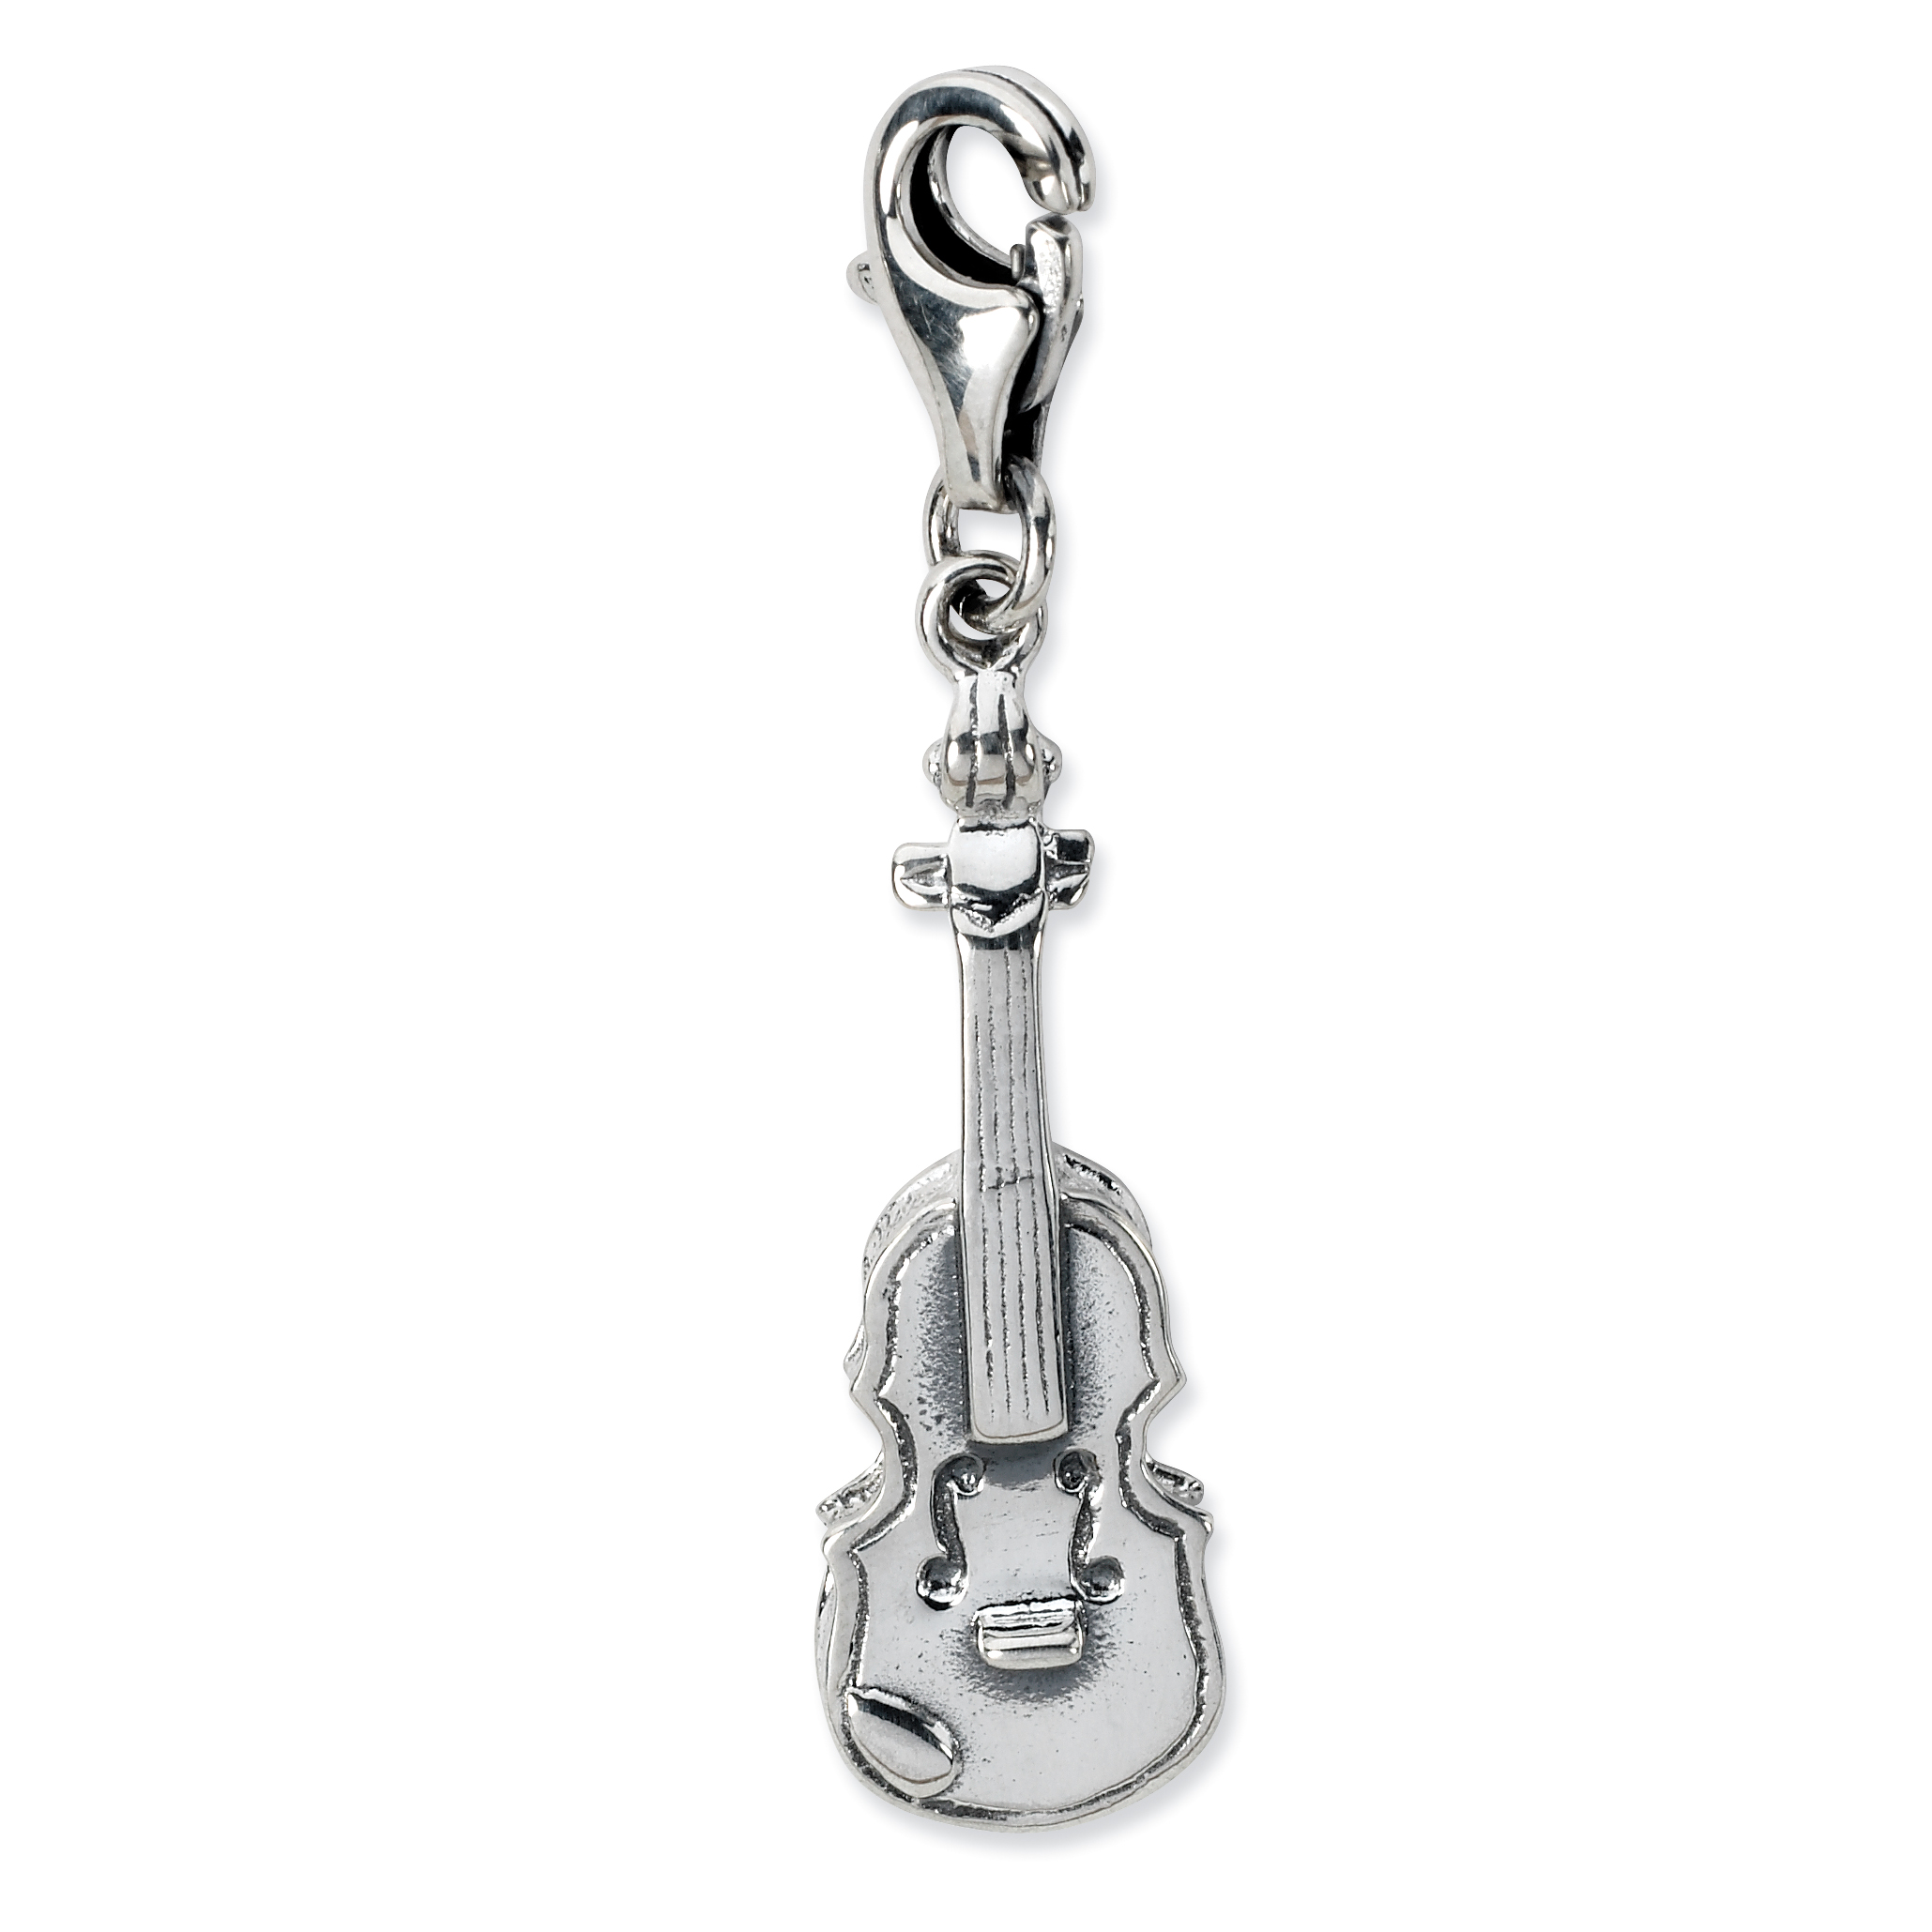 ICE CARATS 925 Sterling Silver 3 D Violin Lobster Clasp Pendant Charm Necklace Musical Fine Jewelry Ideal Gifts For Women Gift Set From Heart